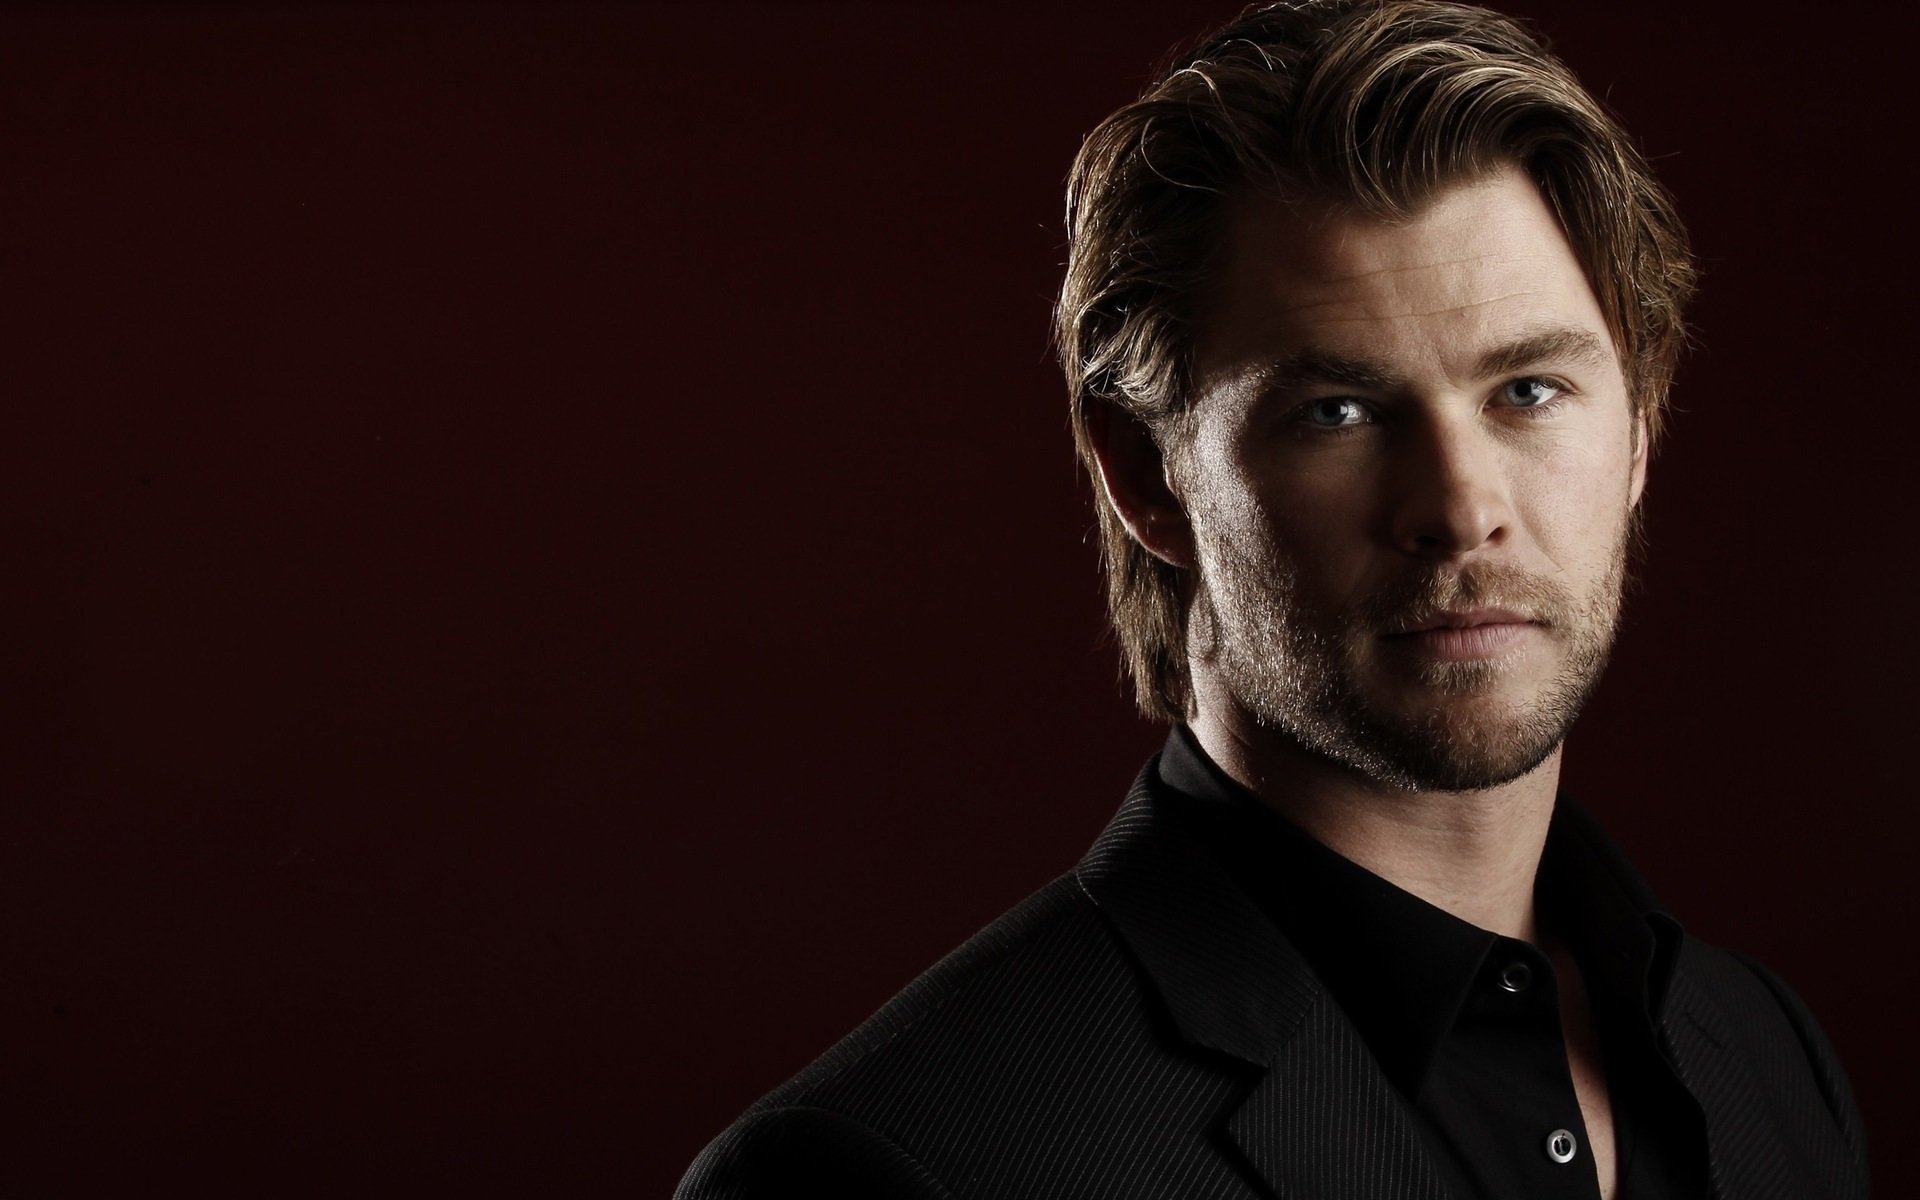 Chris Hemsworth Wallpapers High Resolution and Quality 1920x1200